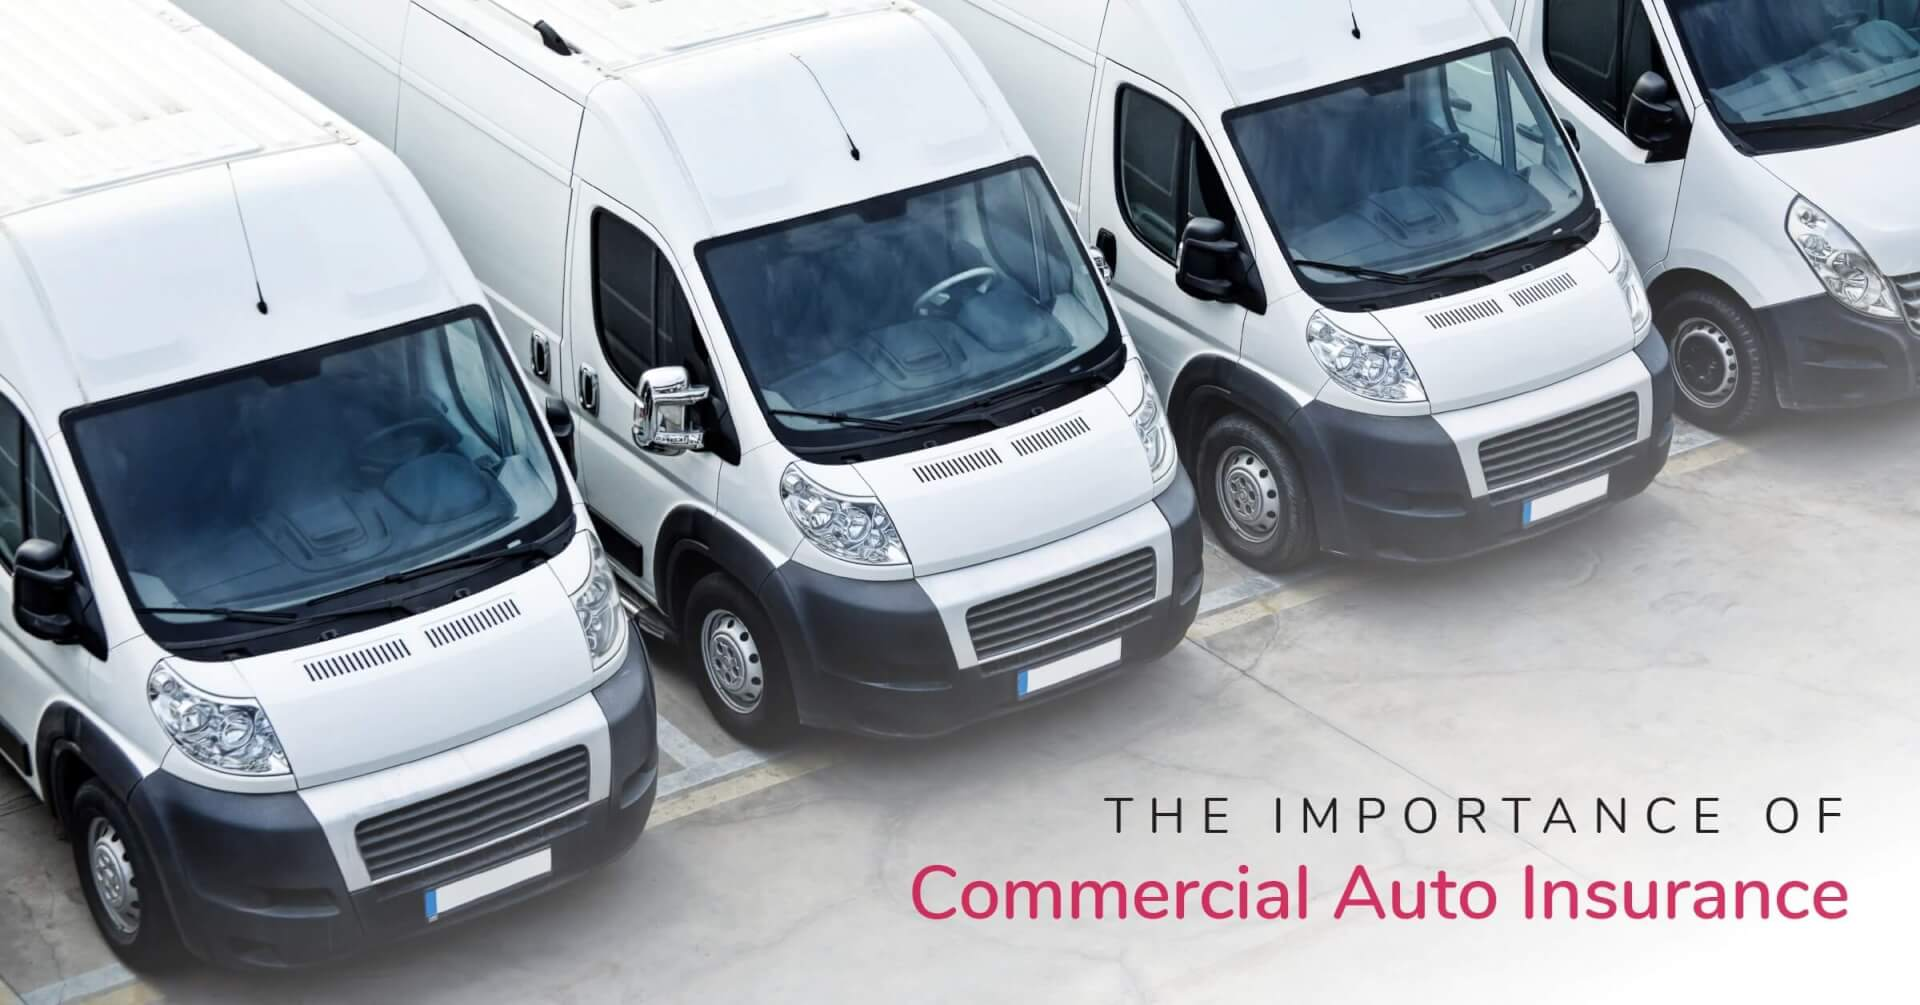 Social Business - The Importance of Commercial Auto Insurance